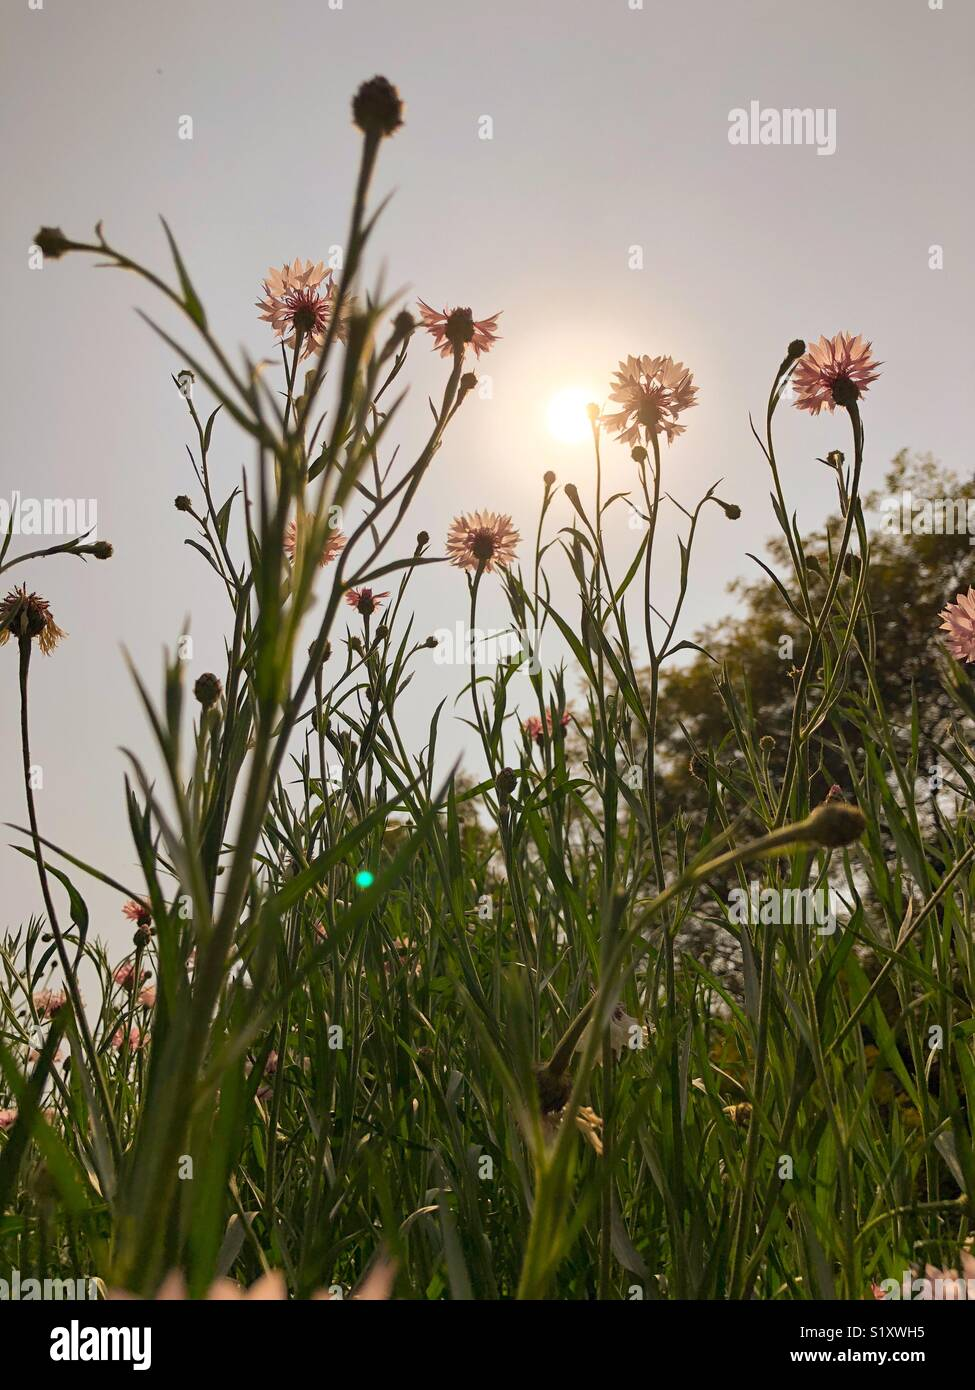 Beautiful Daisy flowers at sunlight Stock Photo